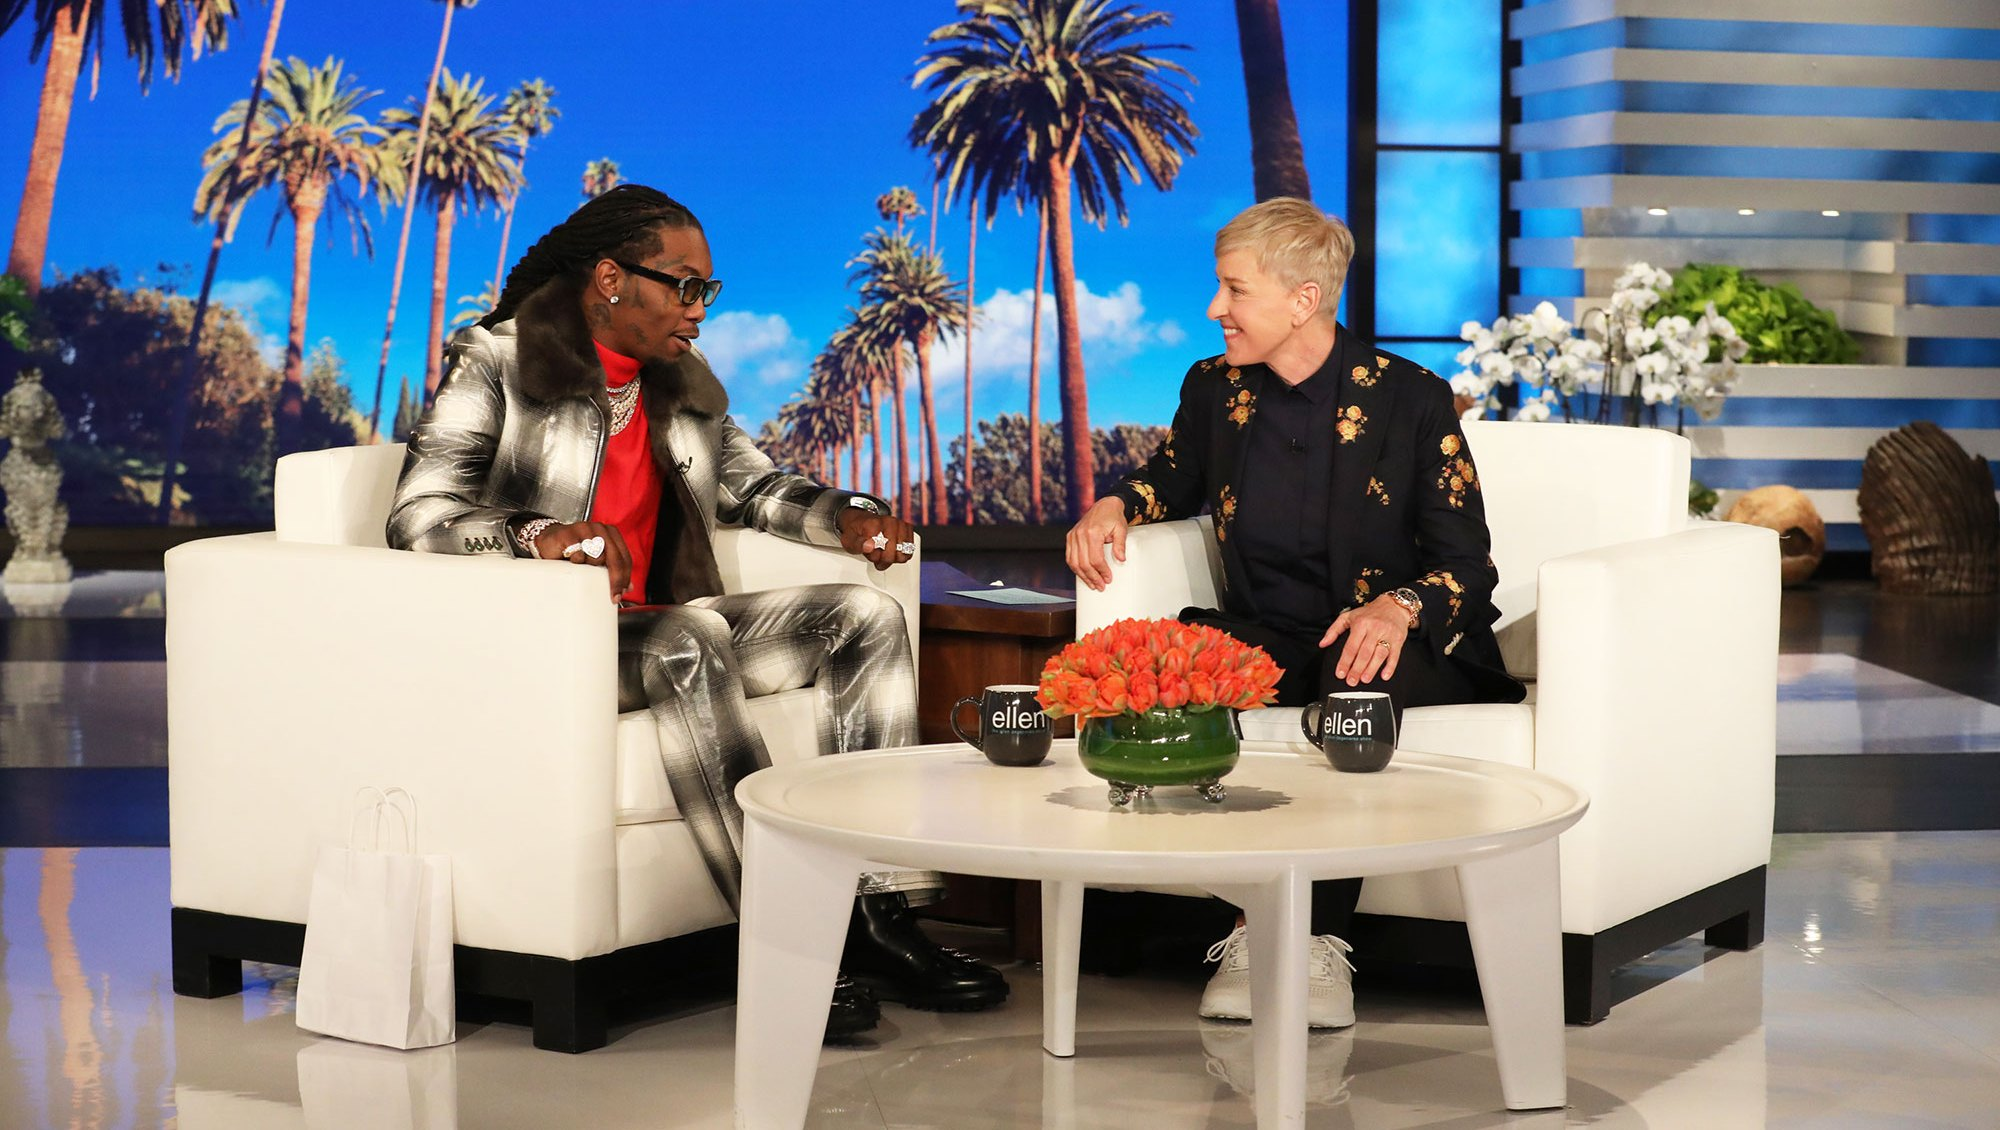 Offset Reveals Whether He Regrets Public Apology to Cardi B: 'I'm Putting It All on the Table'